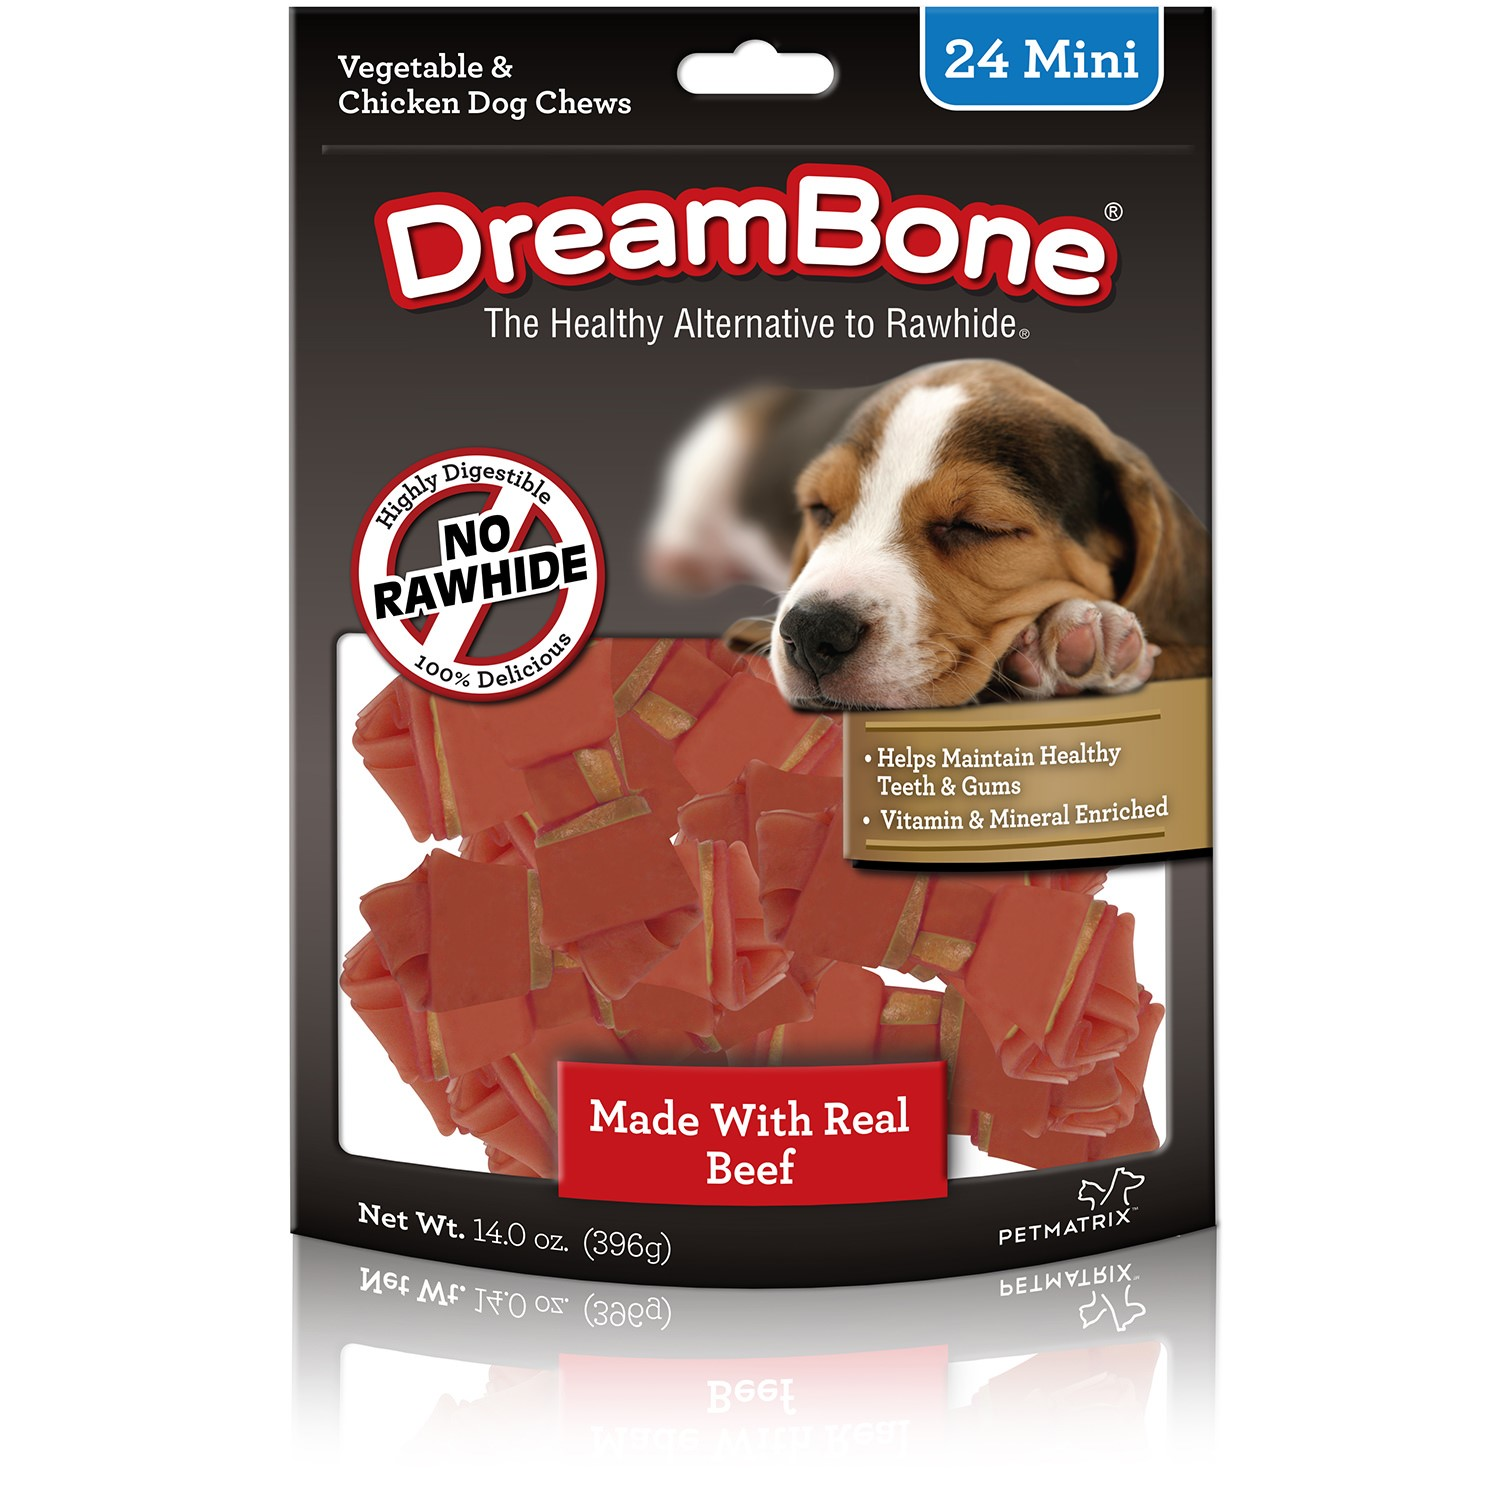 DreamBone Mini Chews With Real Beef 24 Ct, Rawhide-Free Chews For Dogs